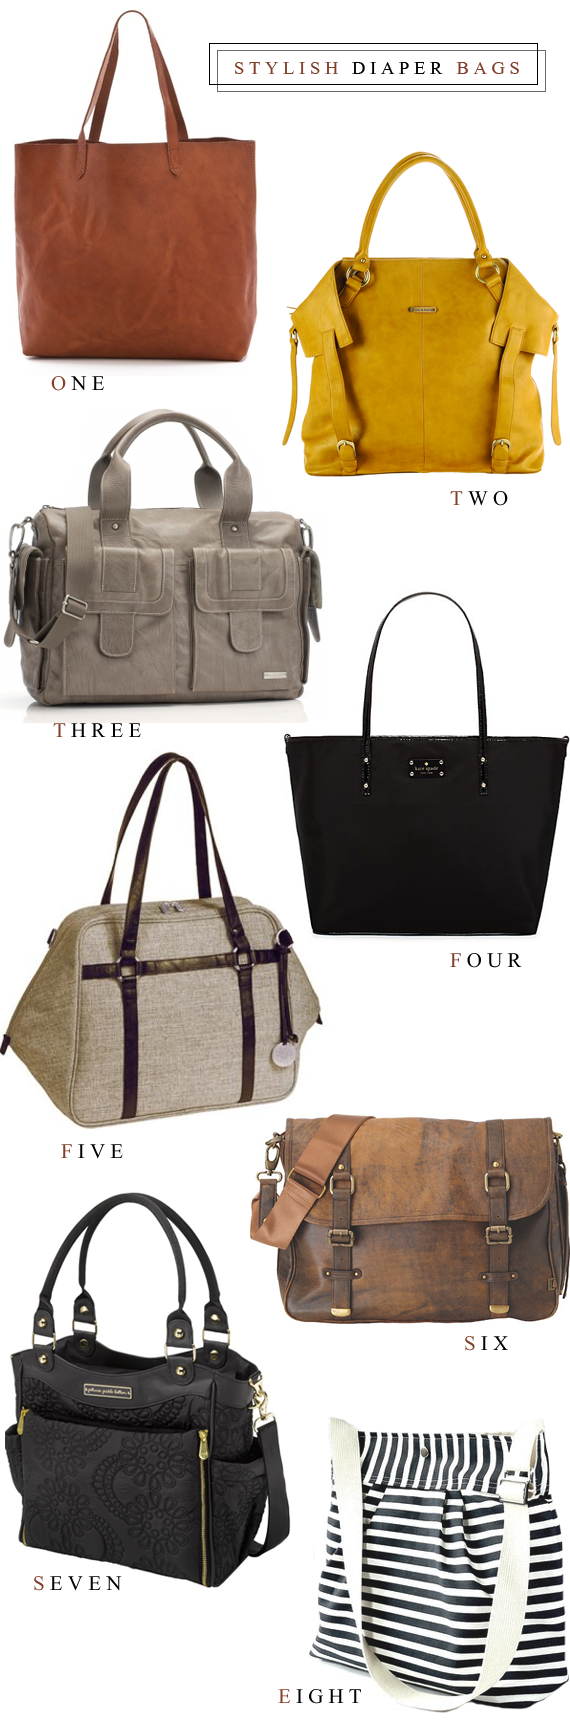 bubby and bean living creatively 8 stylish diaper bags that work as han. Black Bedroom Furniture Sets. Home Design Ideas